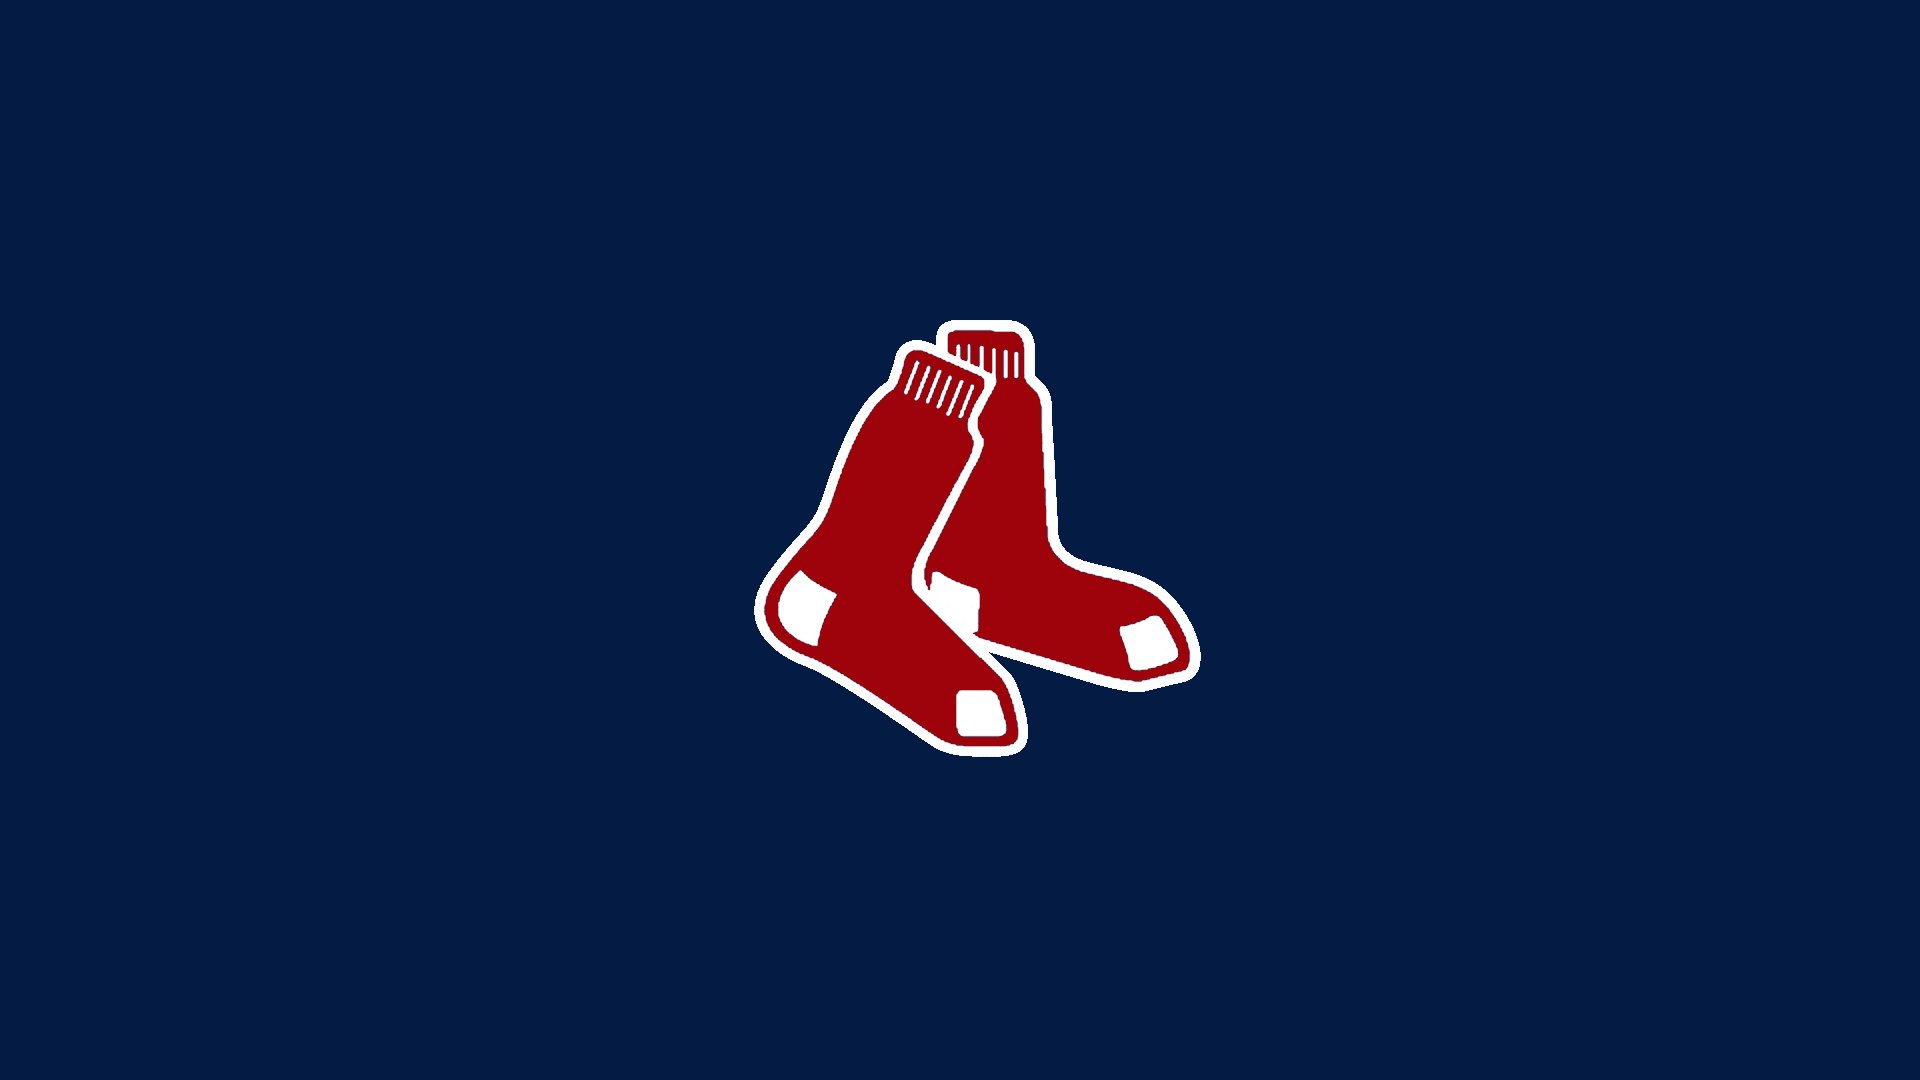 Red Sox Full HD Wallpaper And Background Image